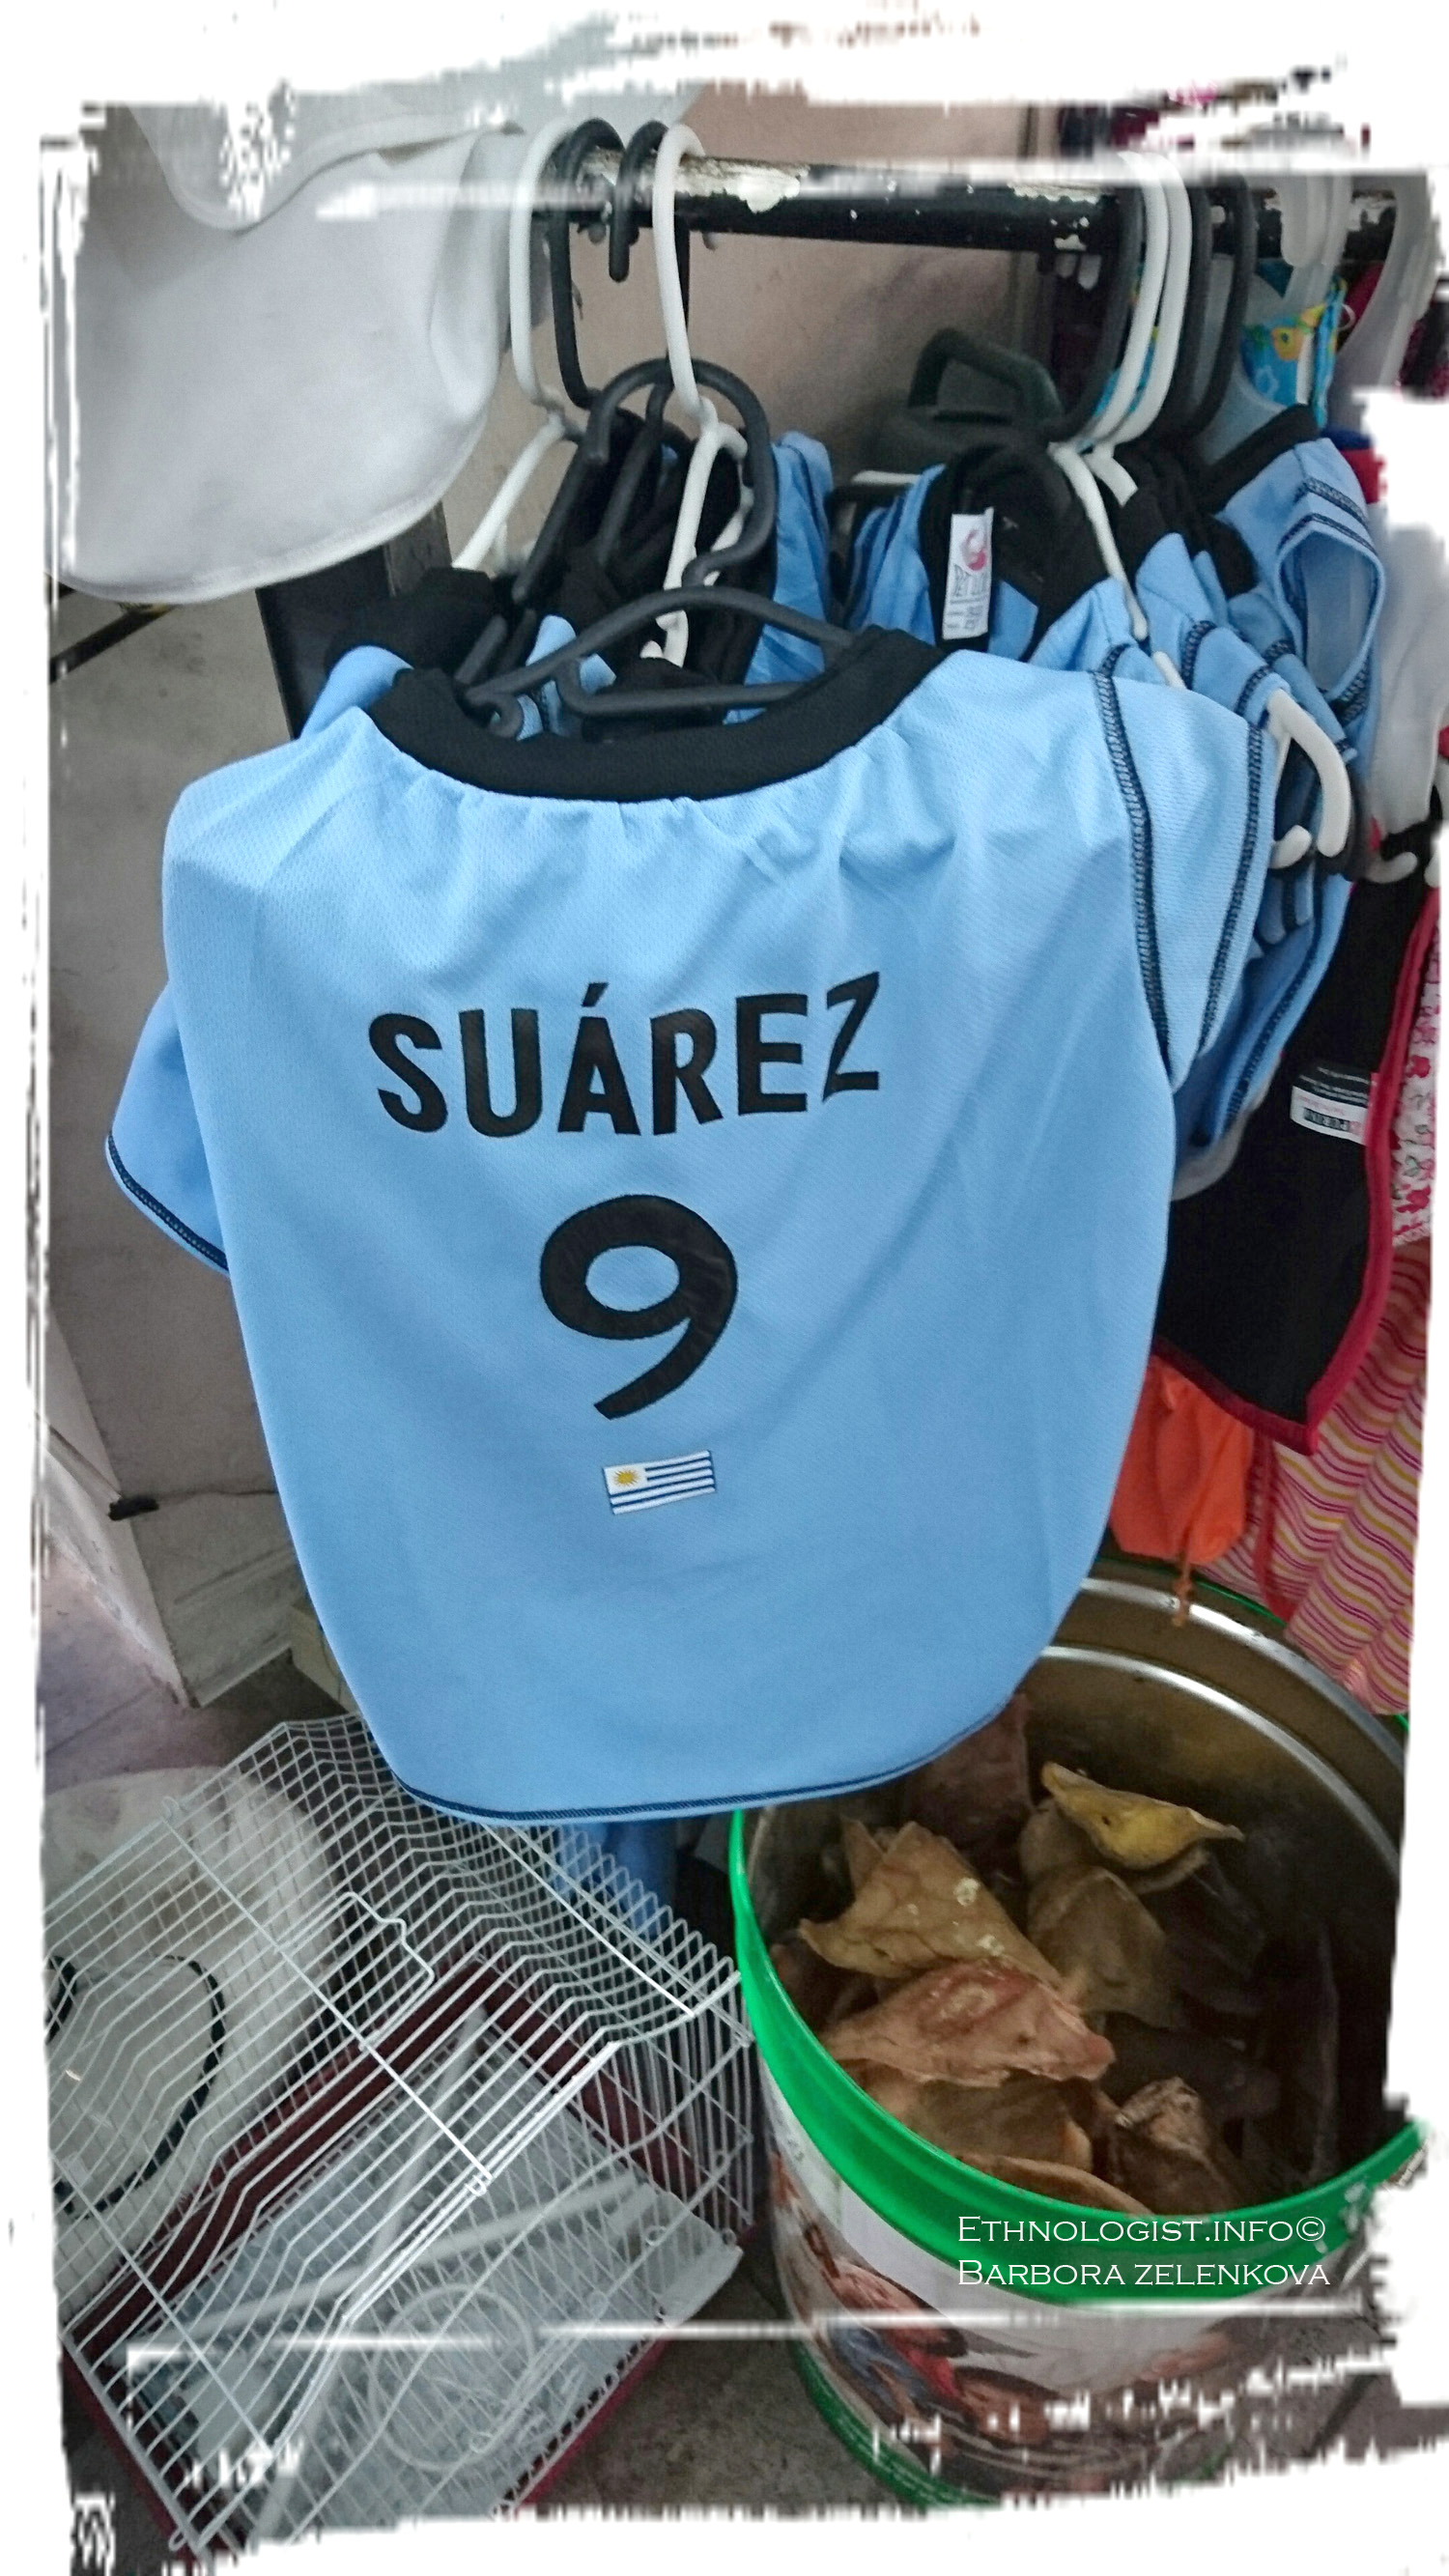 Dog football outfit with the name of Suárez. Photo: Barbora Zelenková, December, 2016.